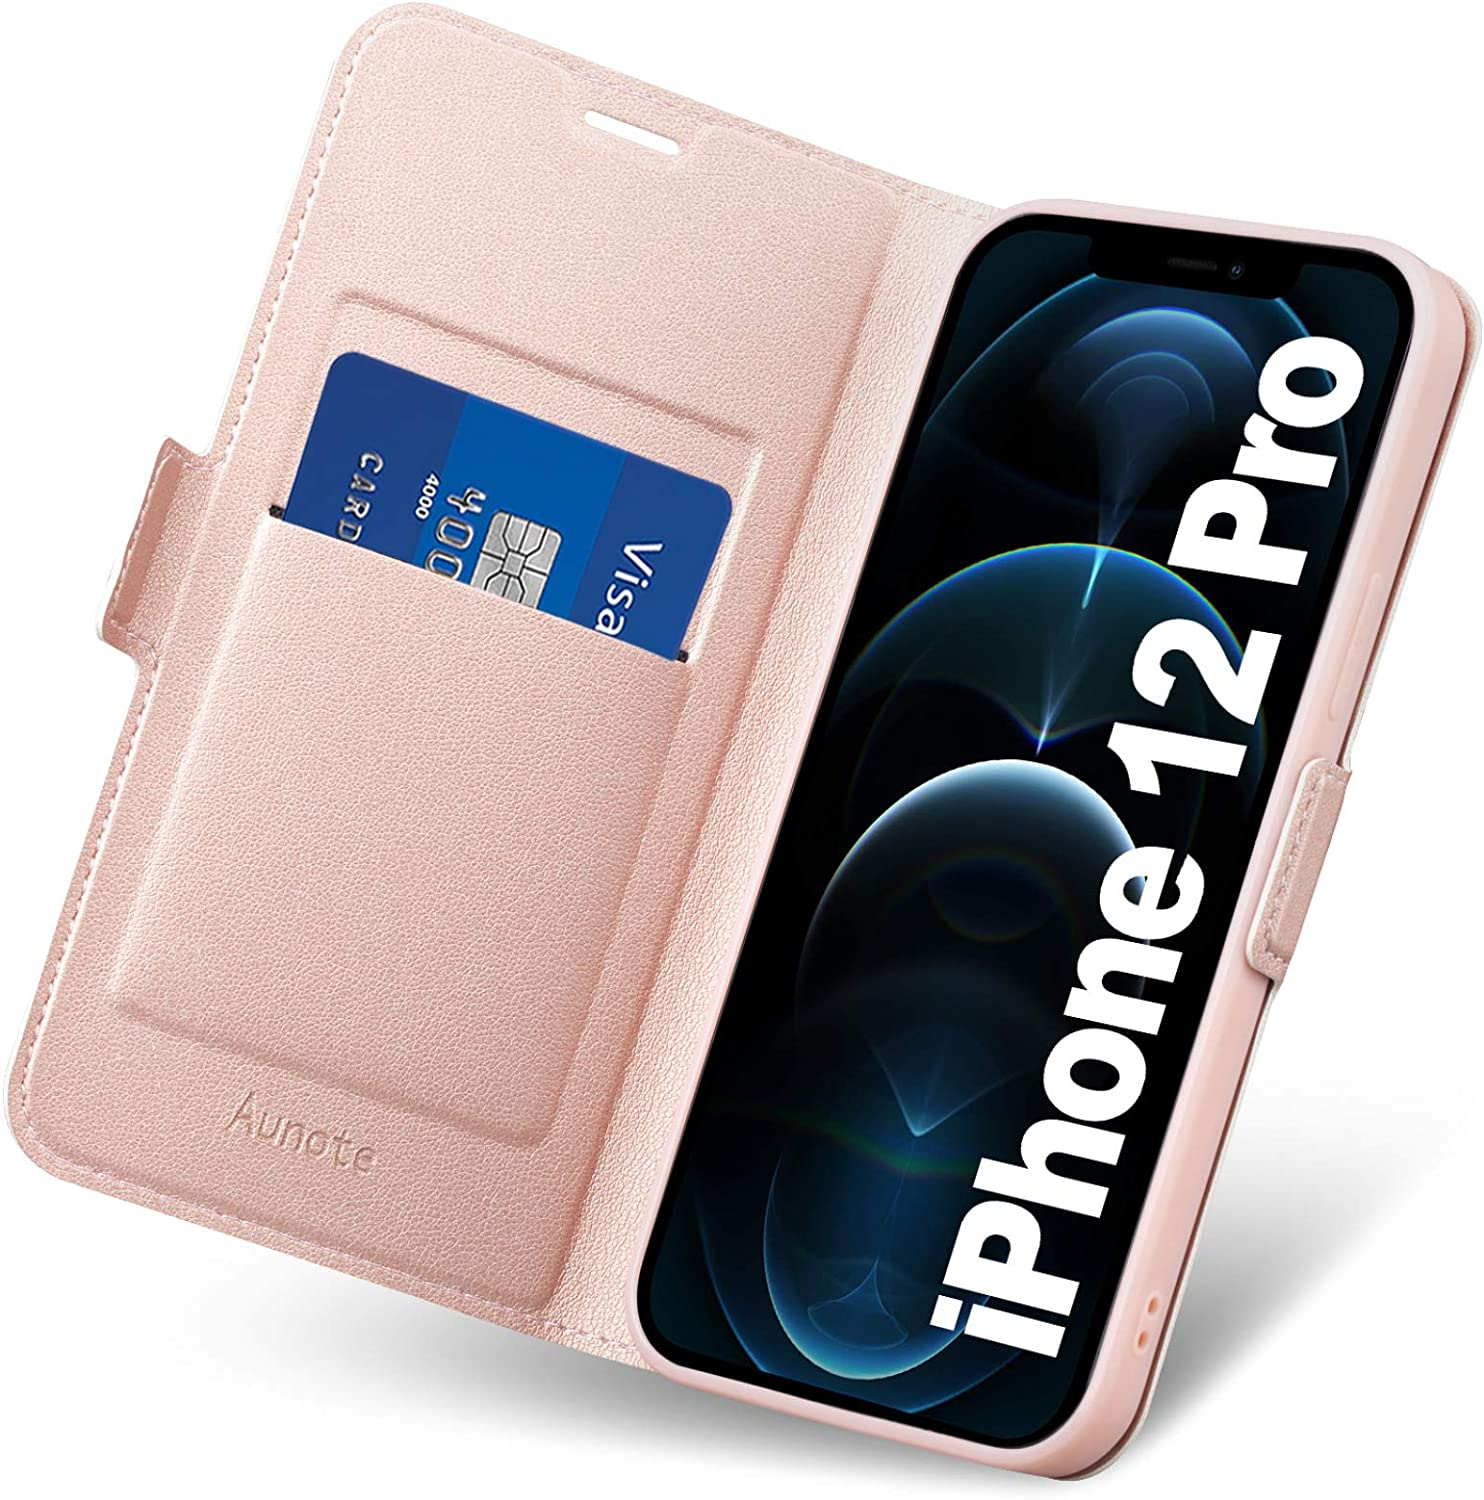 Iphone 12 Pro Case Wallet Slim Iphone 12 Pro Case With Card Holder Iphone 12 Pro Folio Folding Case Iphone 12 Pro Phone Cases Pu Leather Full Protective Flip Cover For Apple